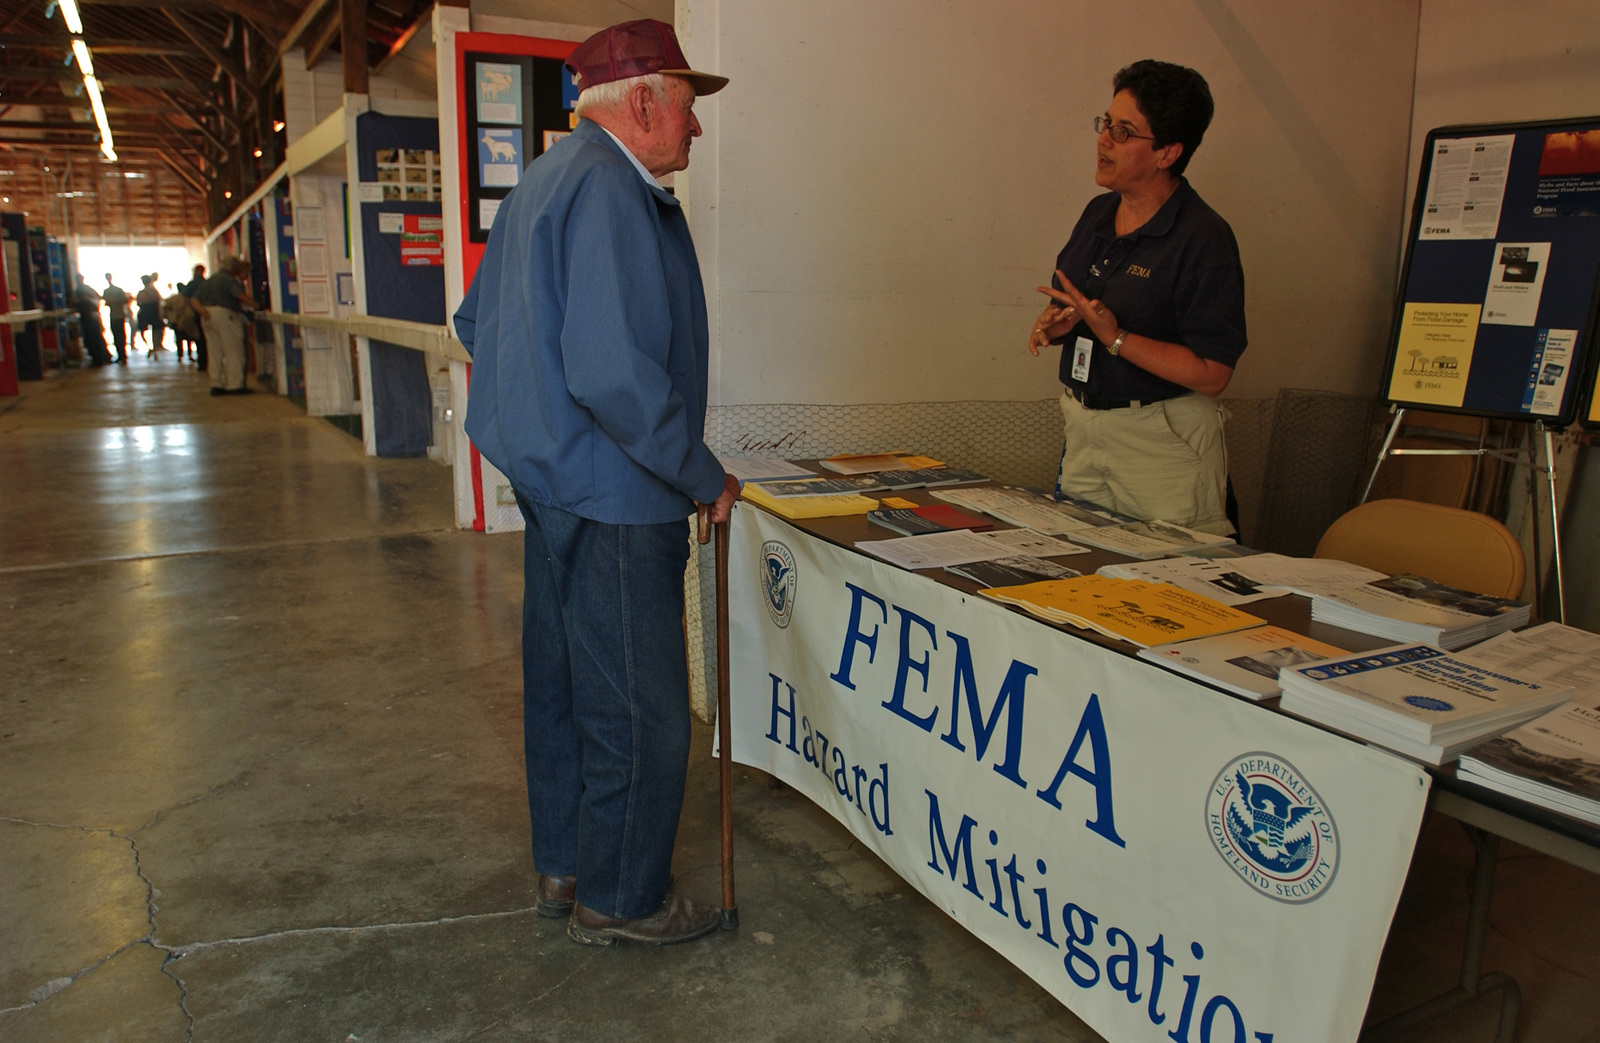 [Severe Storms, Flooding, and Tornadoes] Upper Sandusky, Ohio, September 13, 2007 -- FEMA representative Yvonne Whitely talks with a local homeowner at the Wyondot County Fair about damages to his home due to recent flooding. FEMA mitigation representatives  reach out to the community to provide information on repair and prevention techniques. John Ficara/FEMA